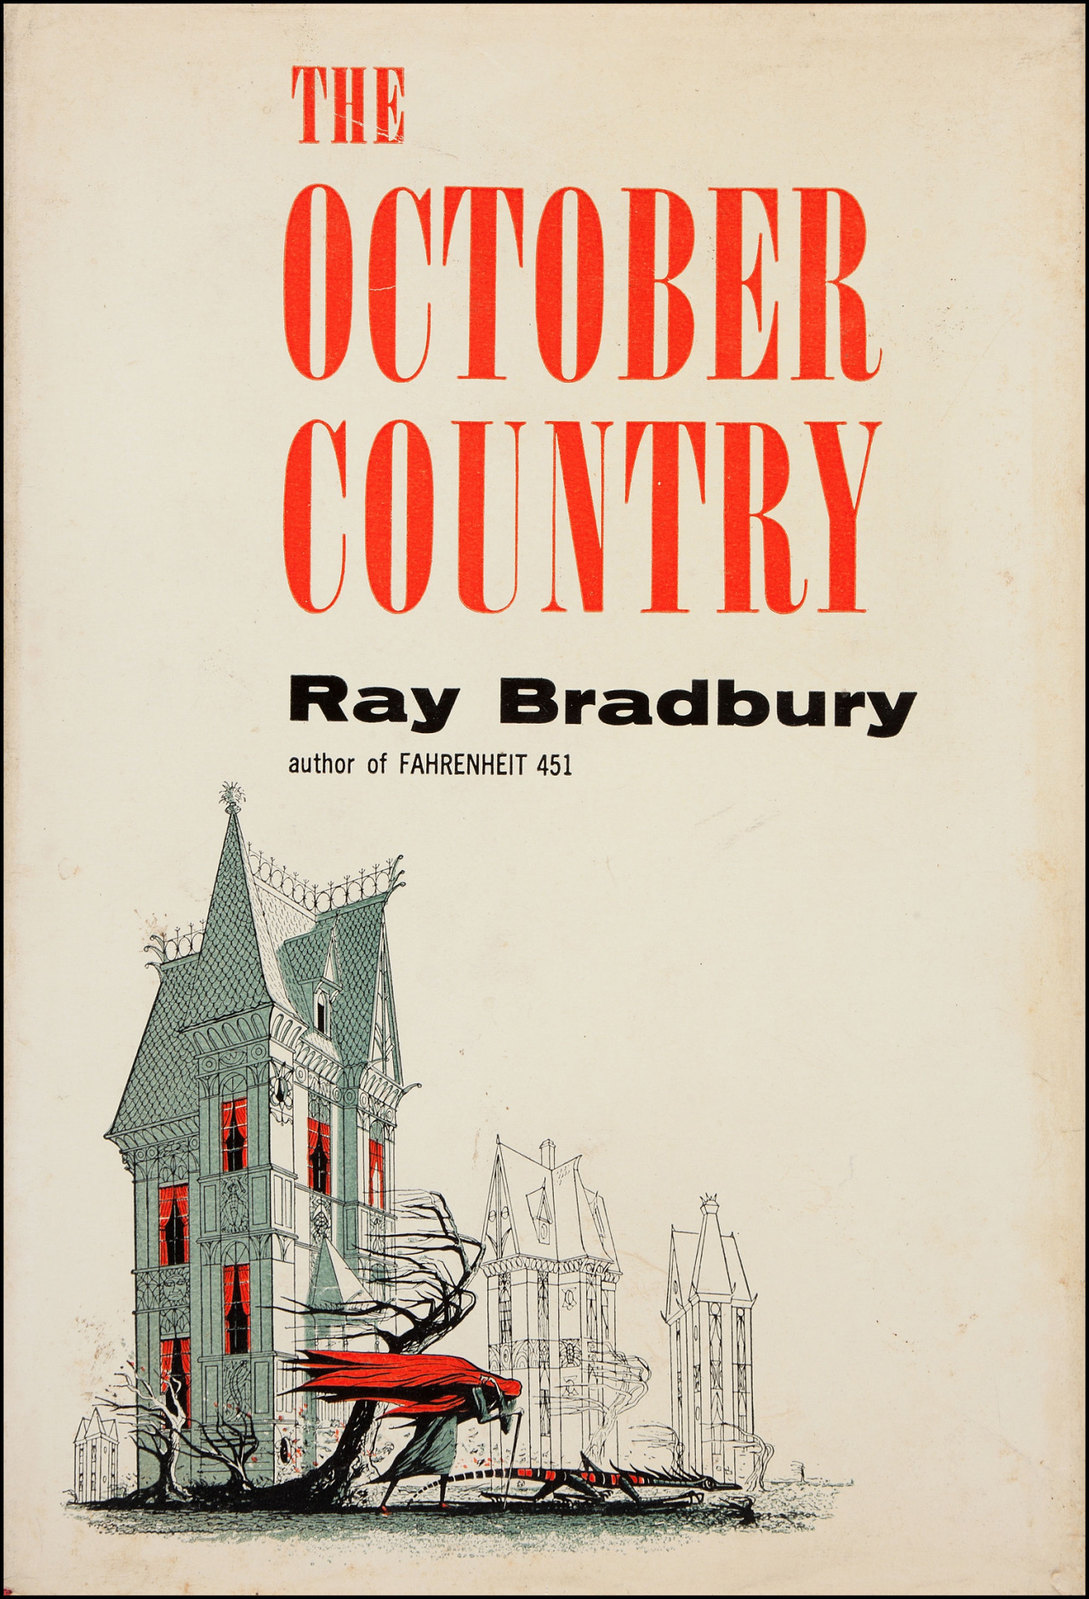 Joseph Mugnaini - The October Country by  Ray Bradbury, 1955